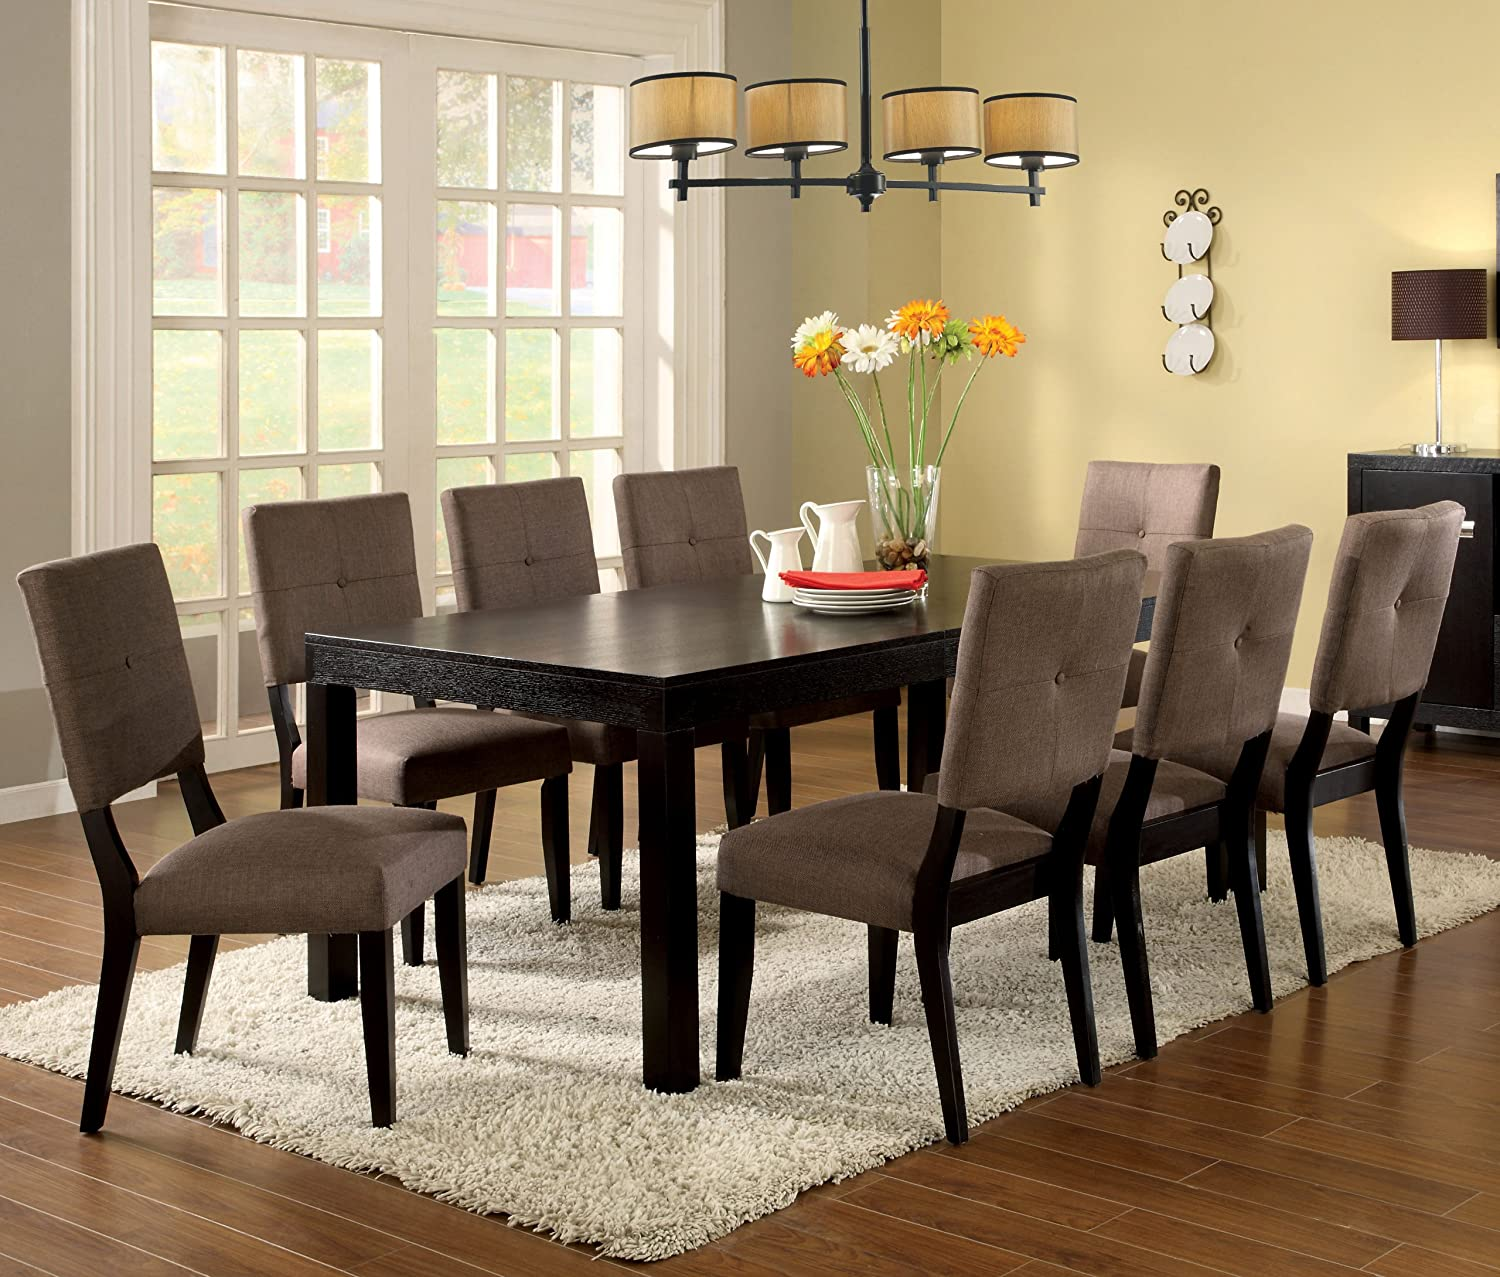 Amazon.com - Furniture of America Roque Rectangular Dining Table ...